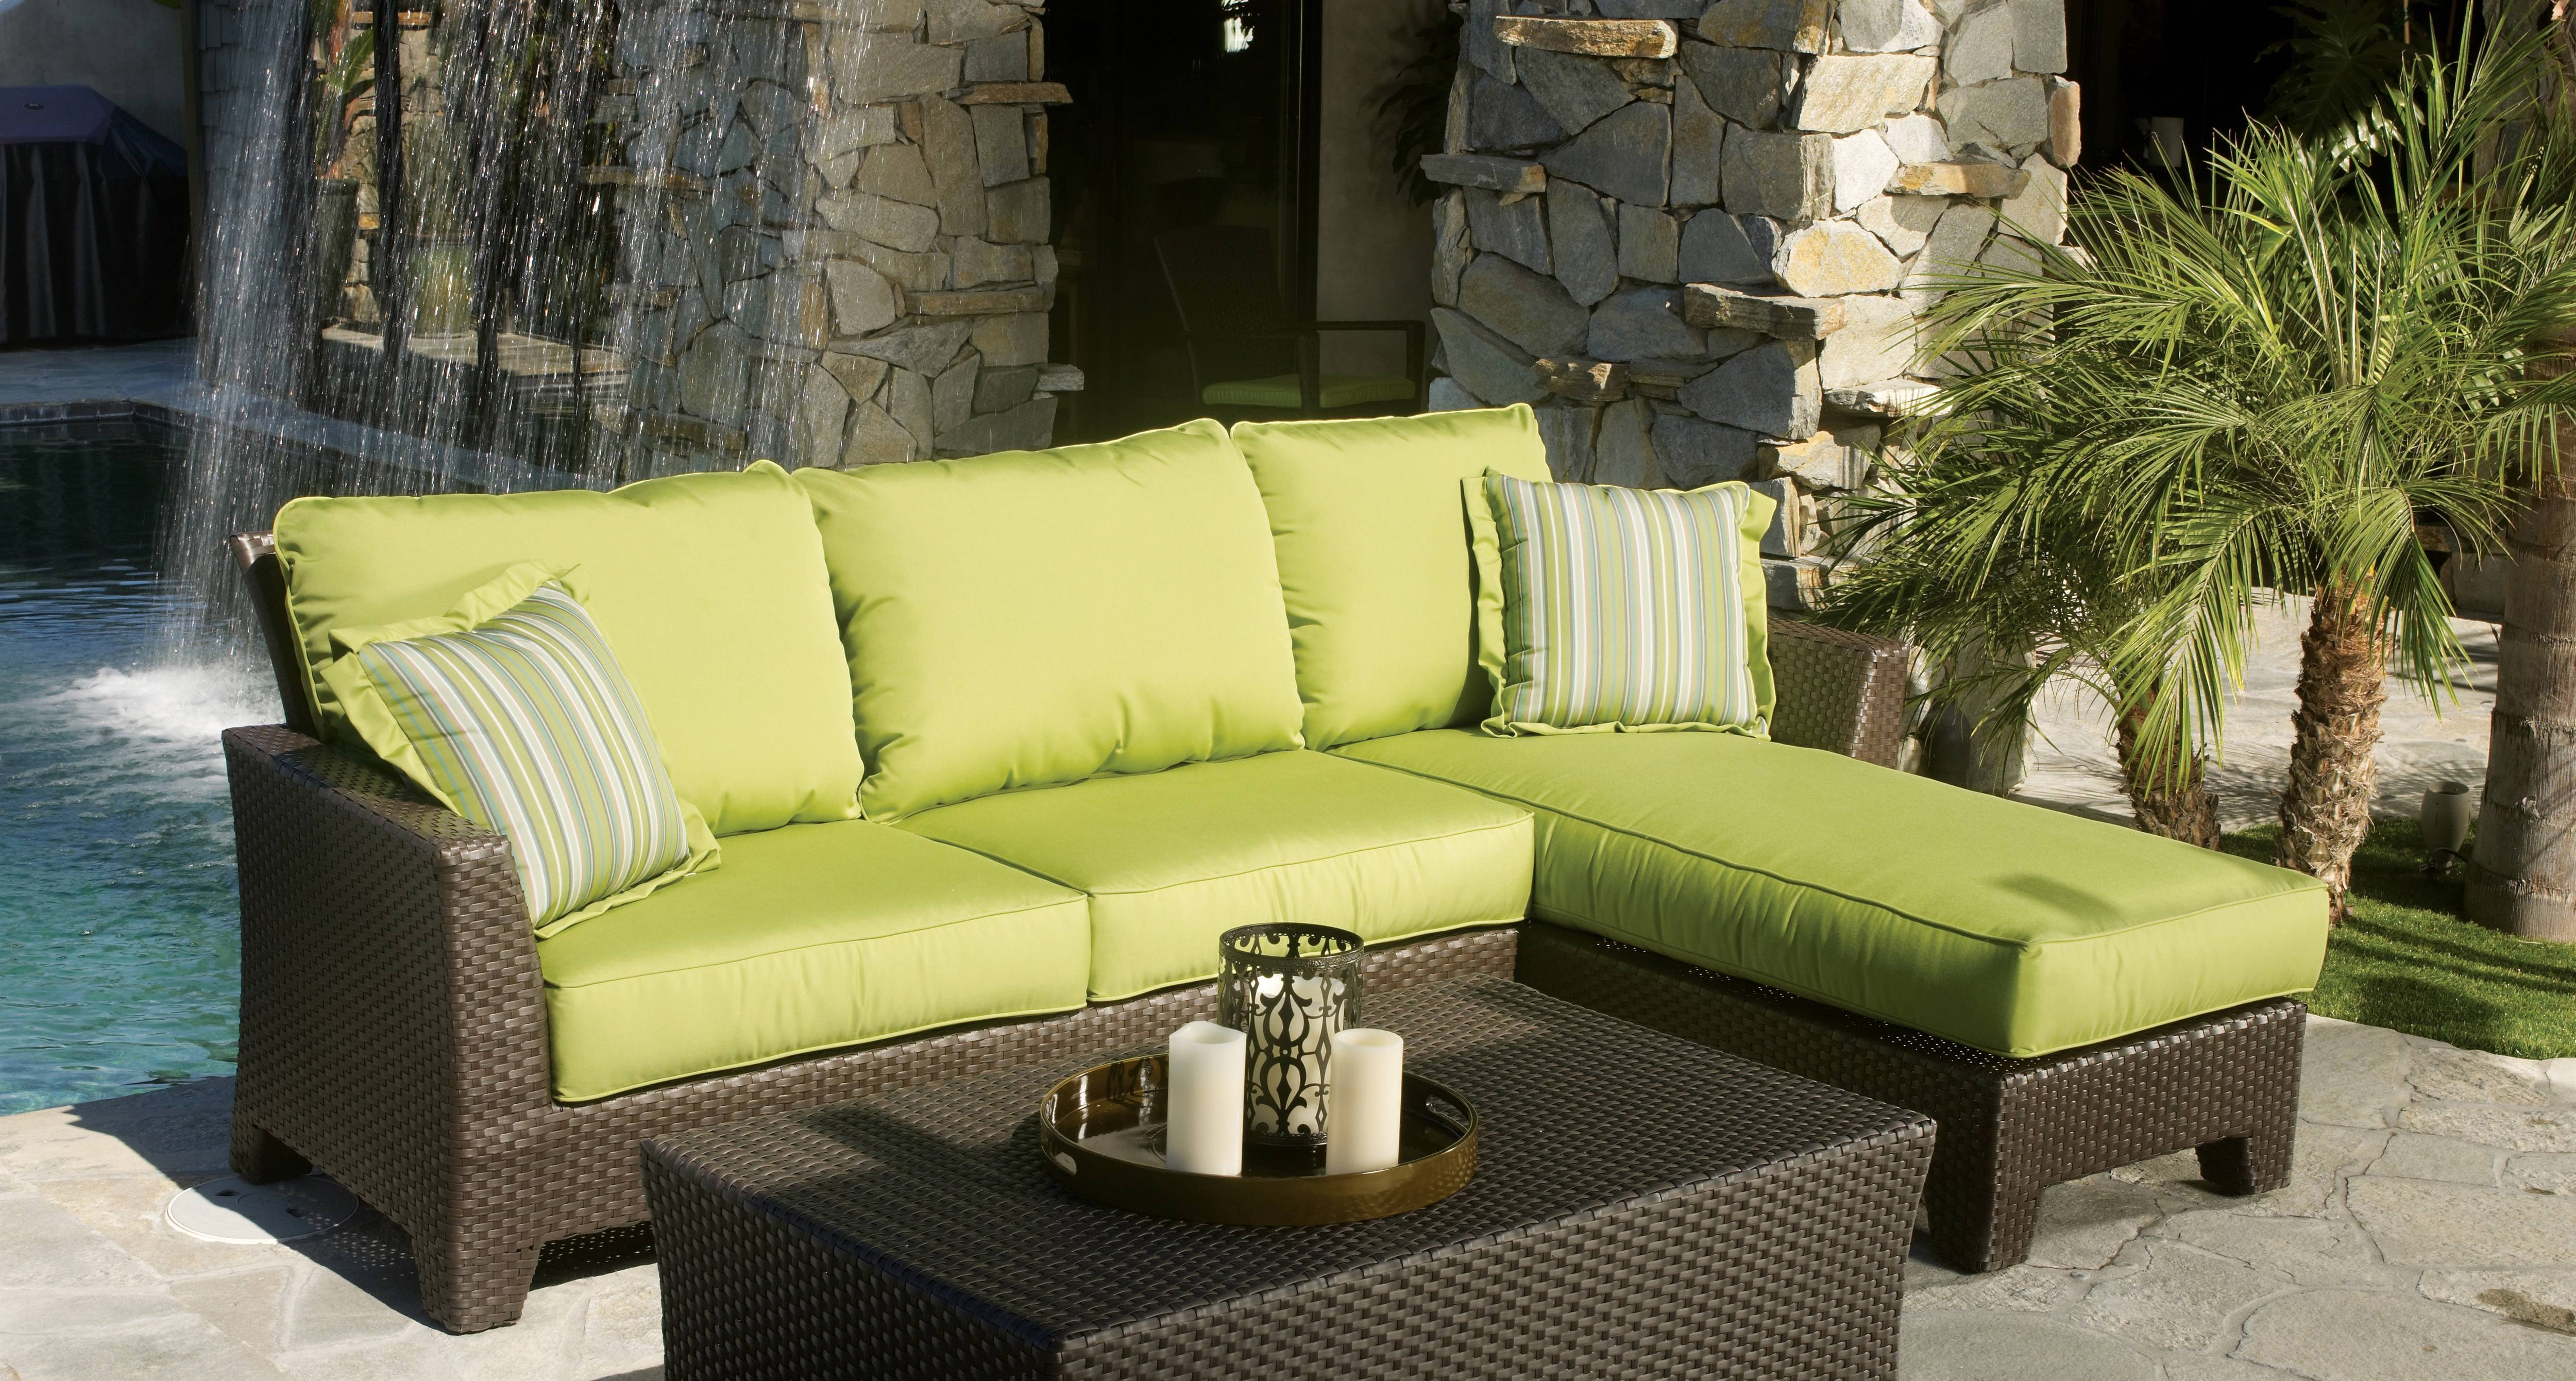 2017 Clearance Sectional Sofas Throughout Feel The Grace Of Your Interior With Long Sectional Sofa Clearance (View 1 of 15)